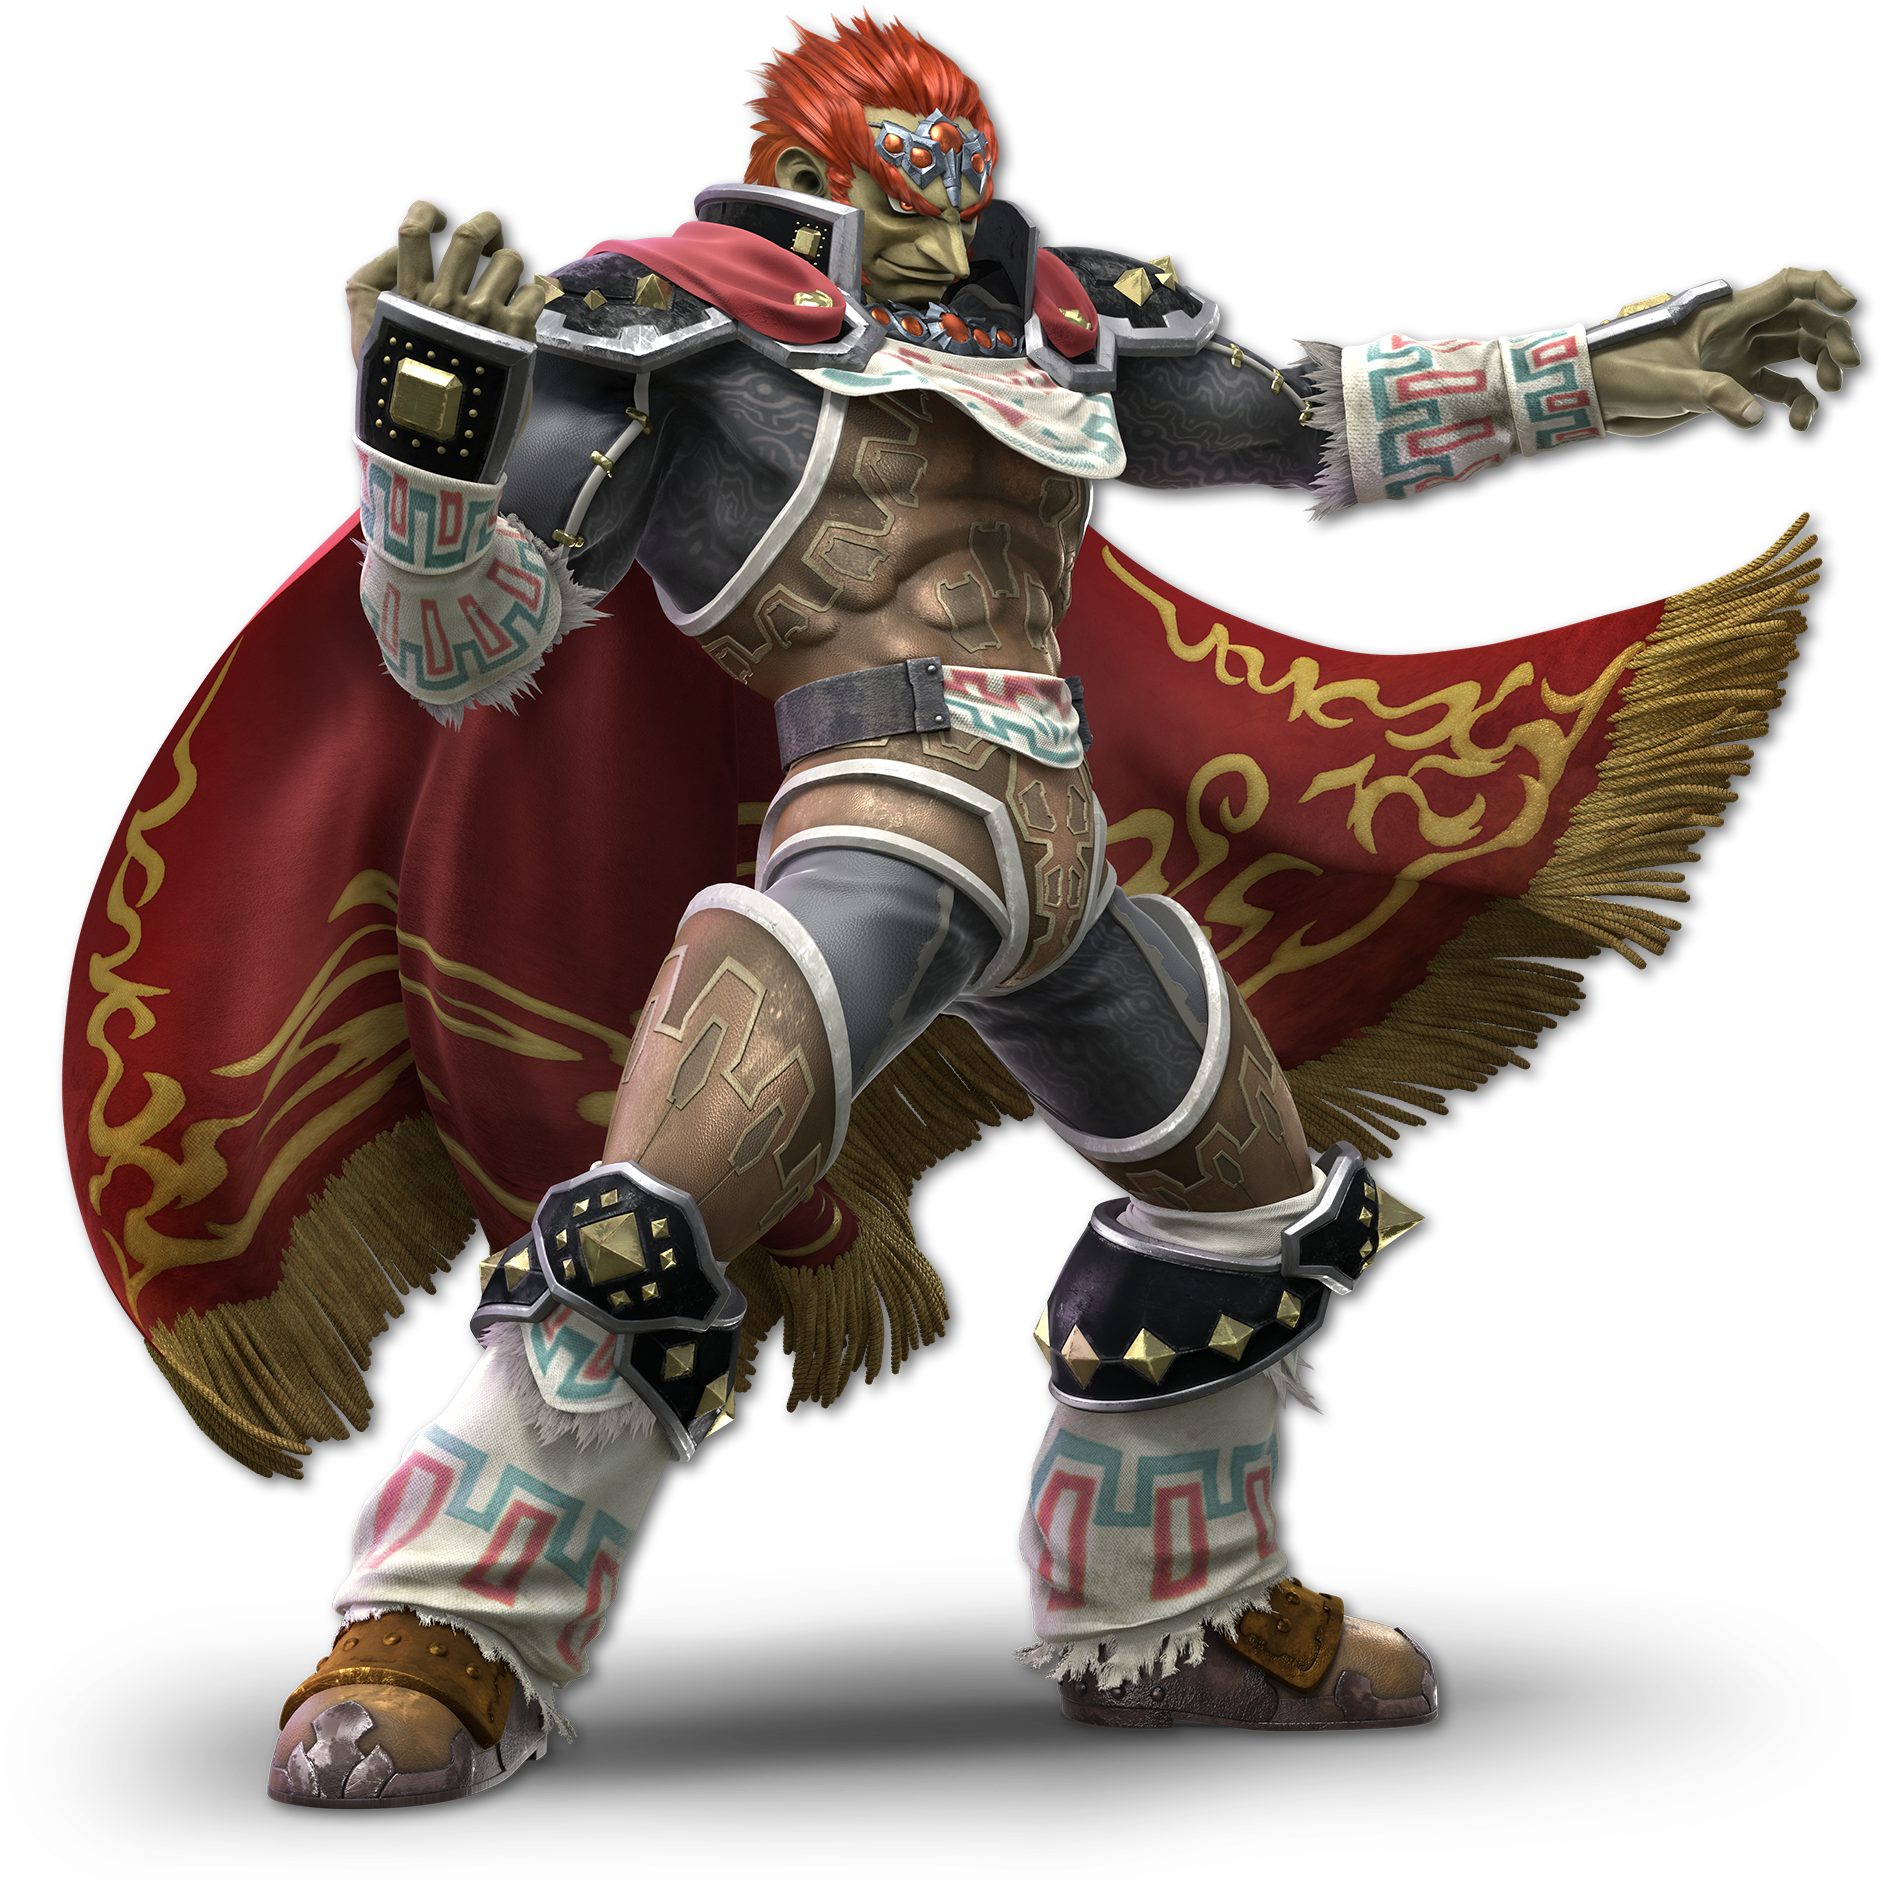 Ganondorf Super Smash Bros Ultimate Smashpedia Fandom